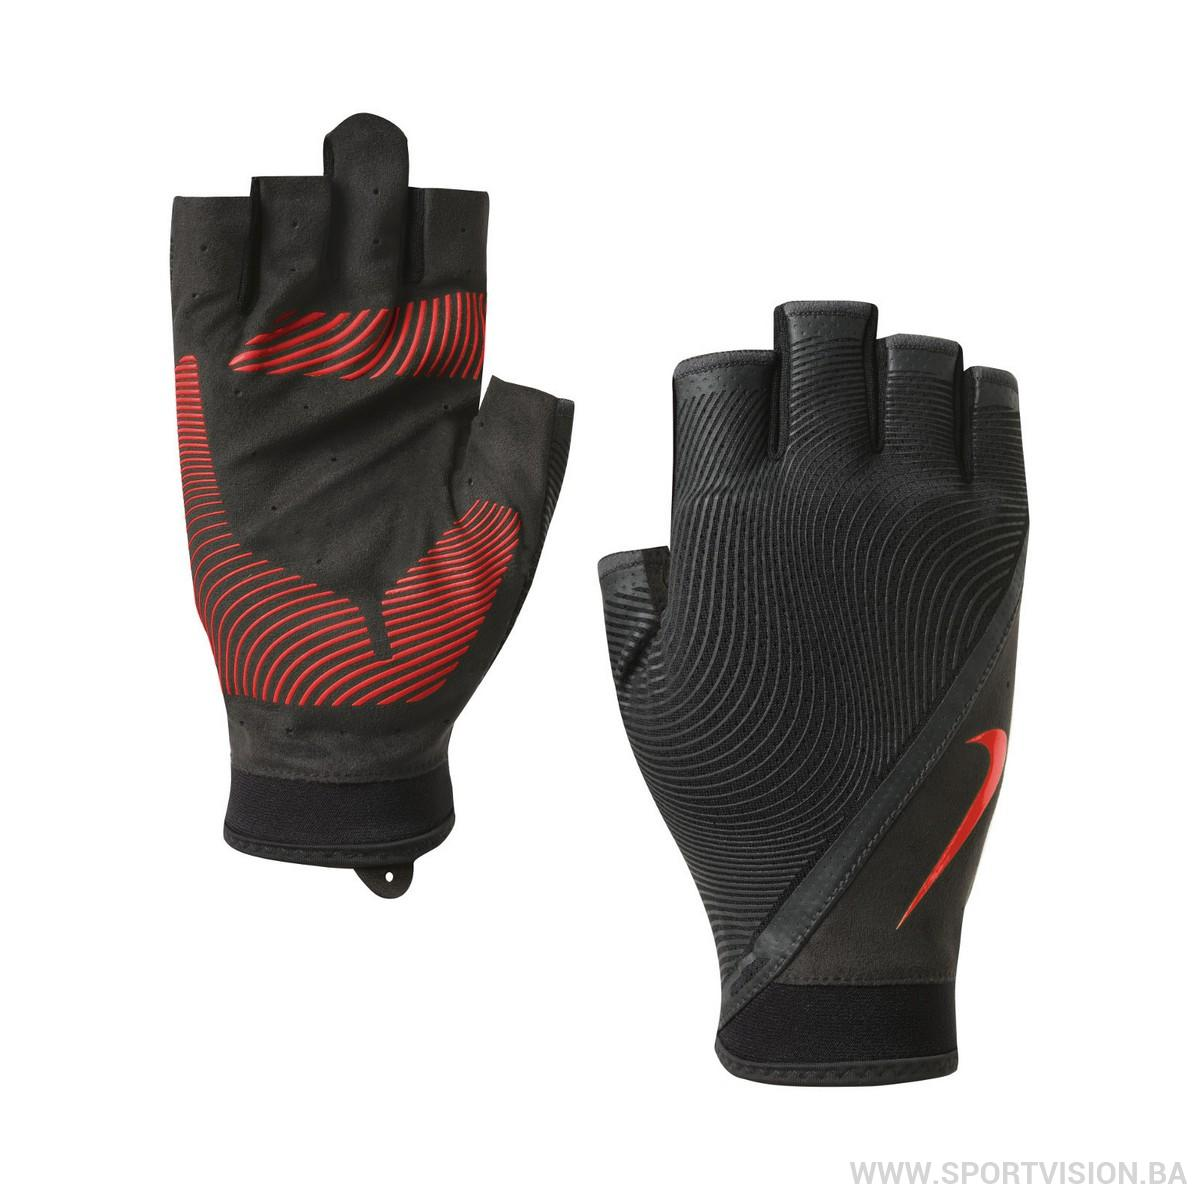 Nike Men S Destroyer Training Gloves: NIKE Rukavice NIKE MEN'S HAVOC TRAINING GLOVES XL N.LG.B6